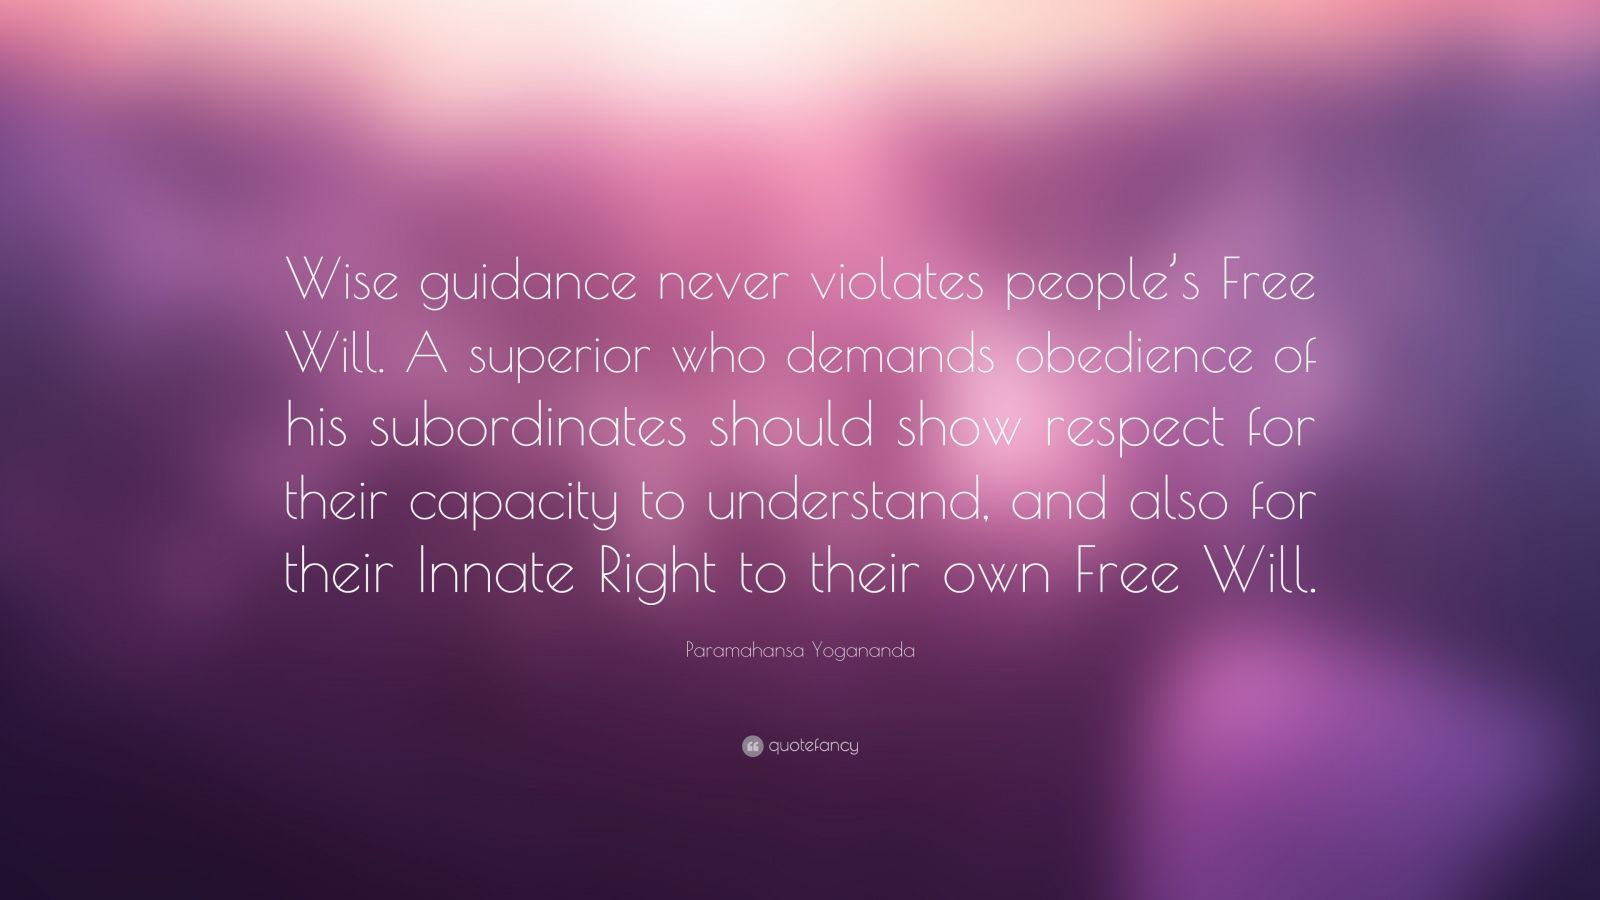 """Paramahansa Yogananda Quote: """"Wise guidance never violates people's Free Will. A superior who demands obedience of his subordinates should show respect for their capacity to understand, and also for their Innate Right to their own Free Will."""""""